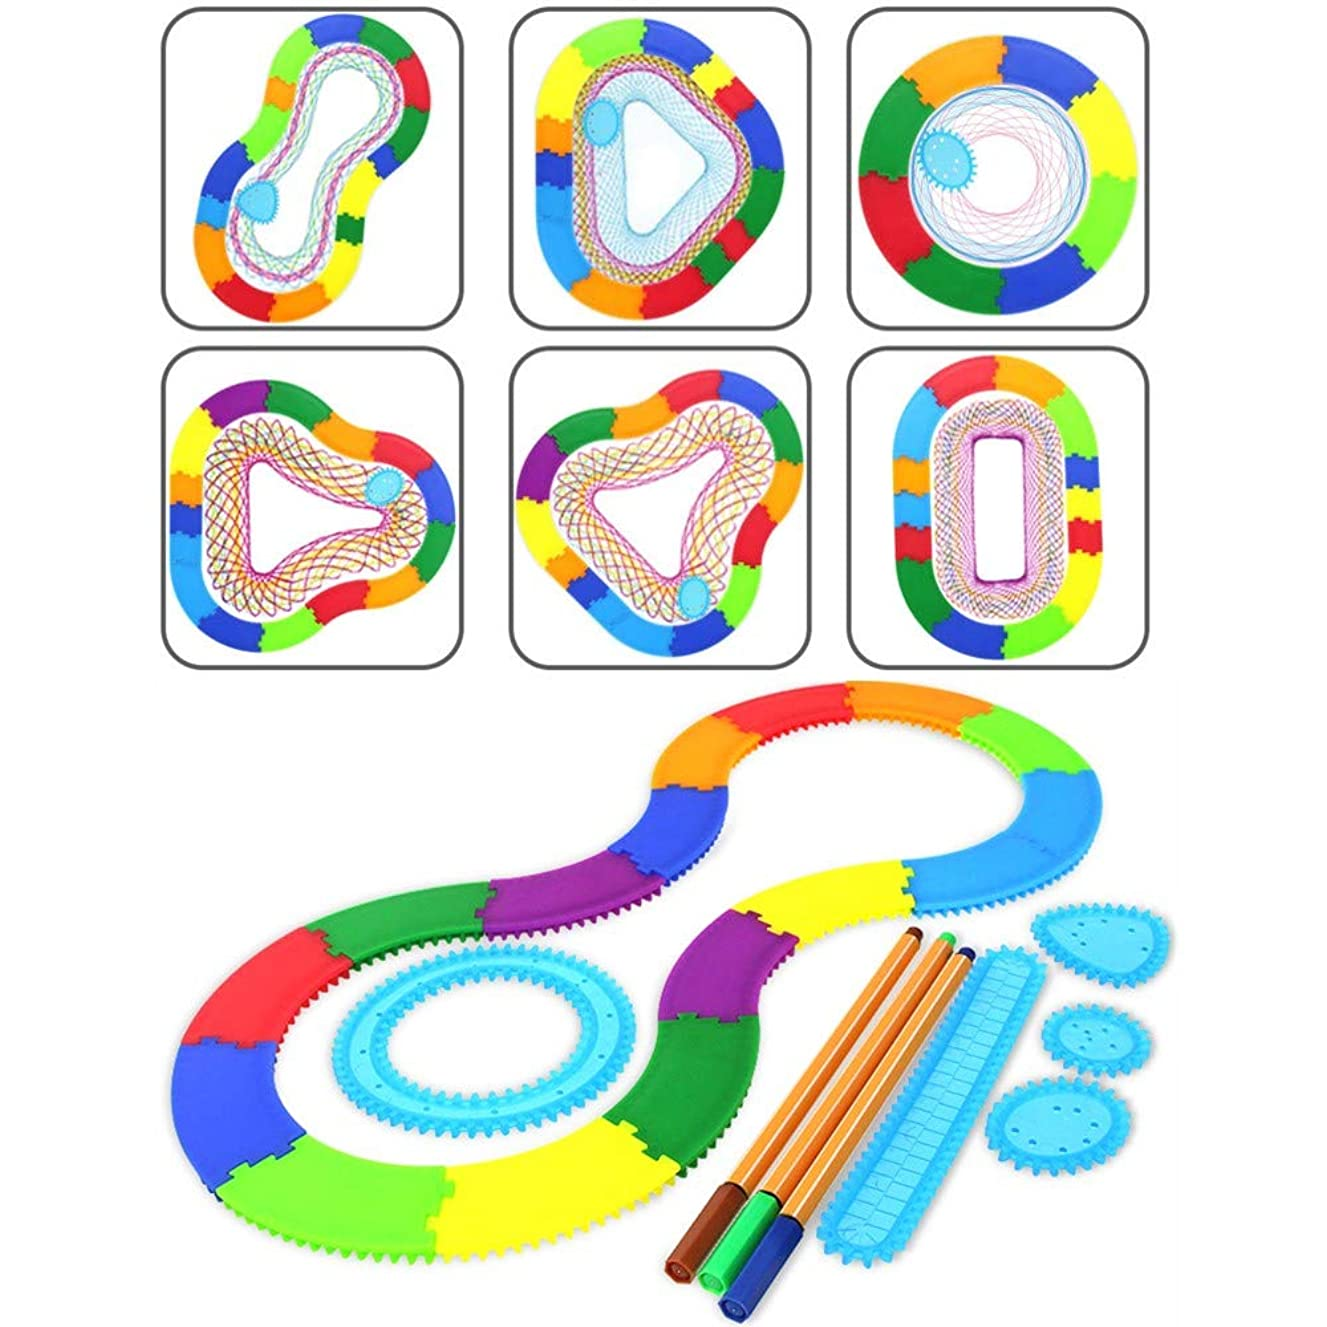 Ipienlee Magic Ruler 33pcs ABS Drawing Toys Set Interlocking Gears Wheels Drawing Accessories Creative Educational Toy for Children